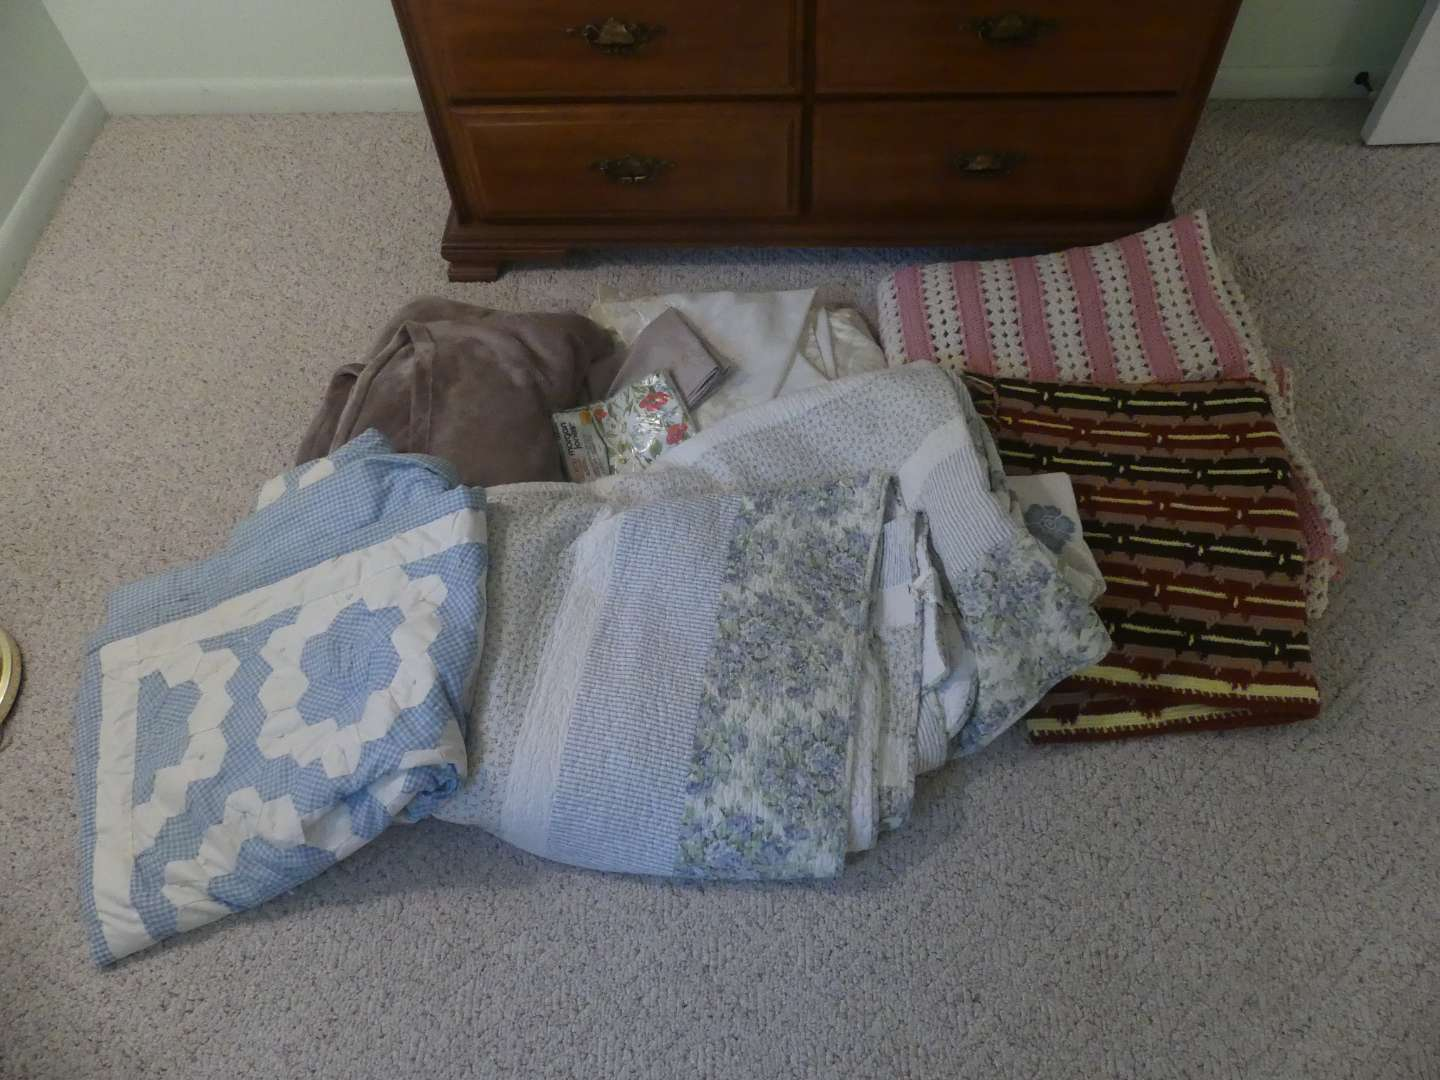 Lot #164 Comforters, Throws, Blankets and Curtains